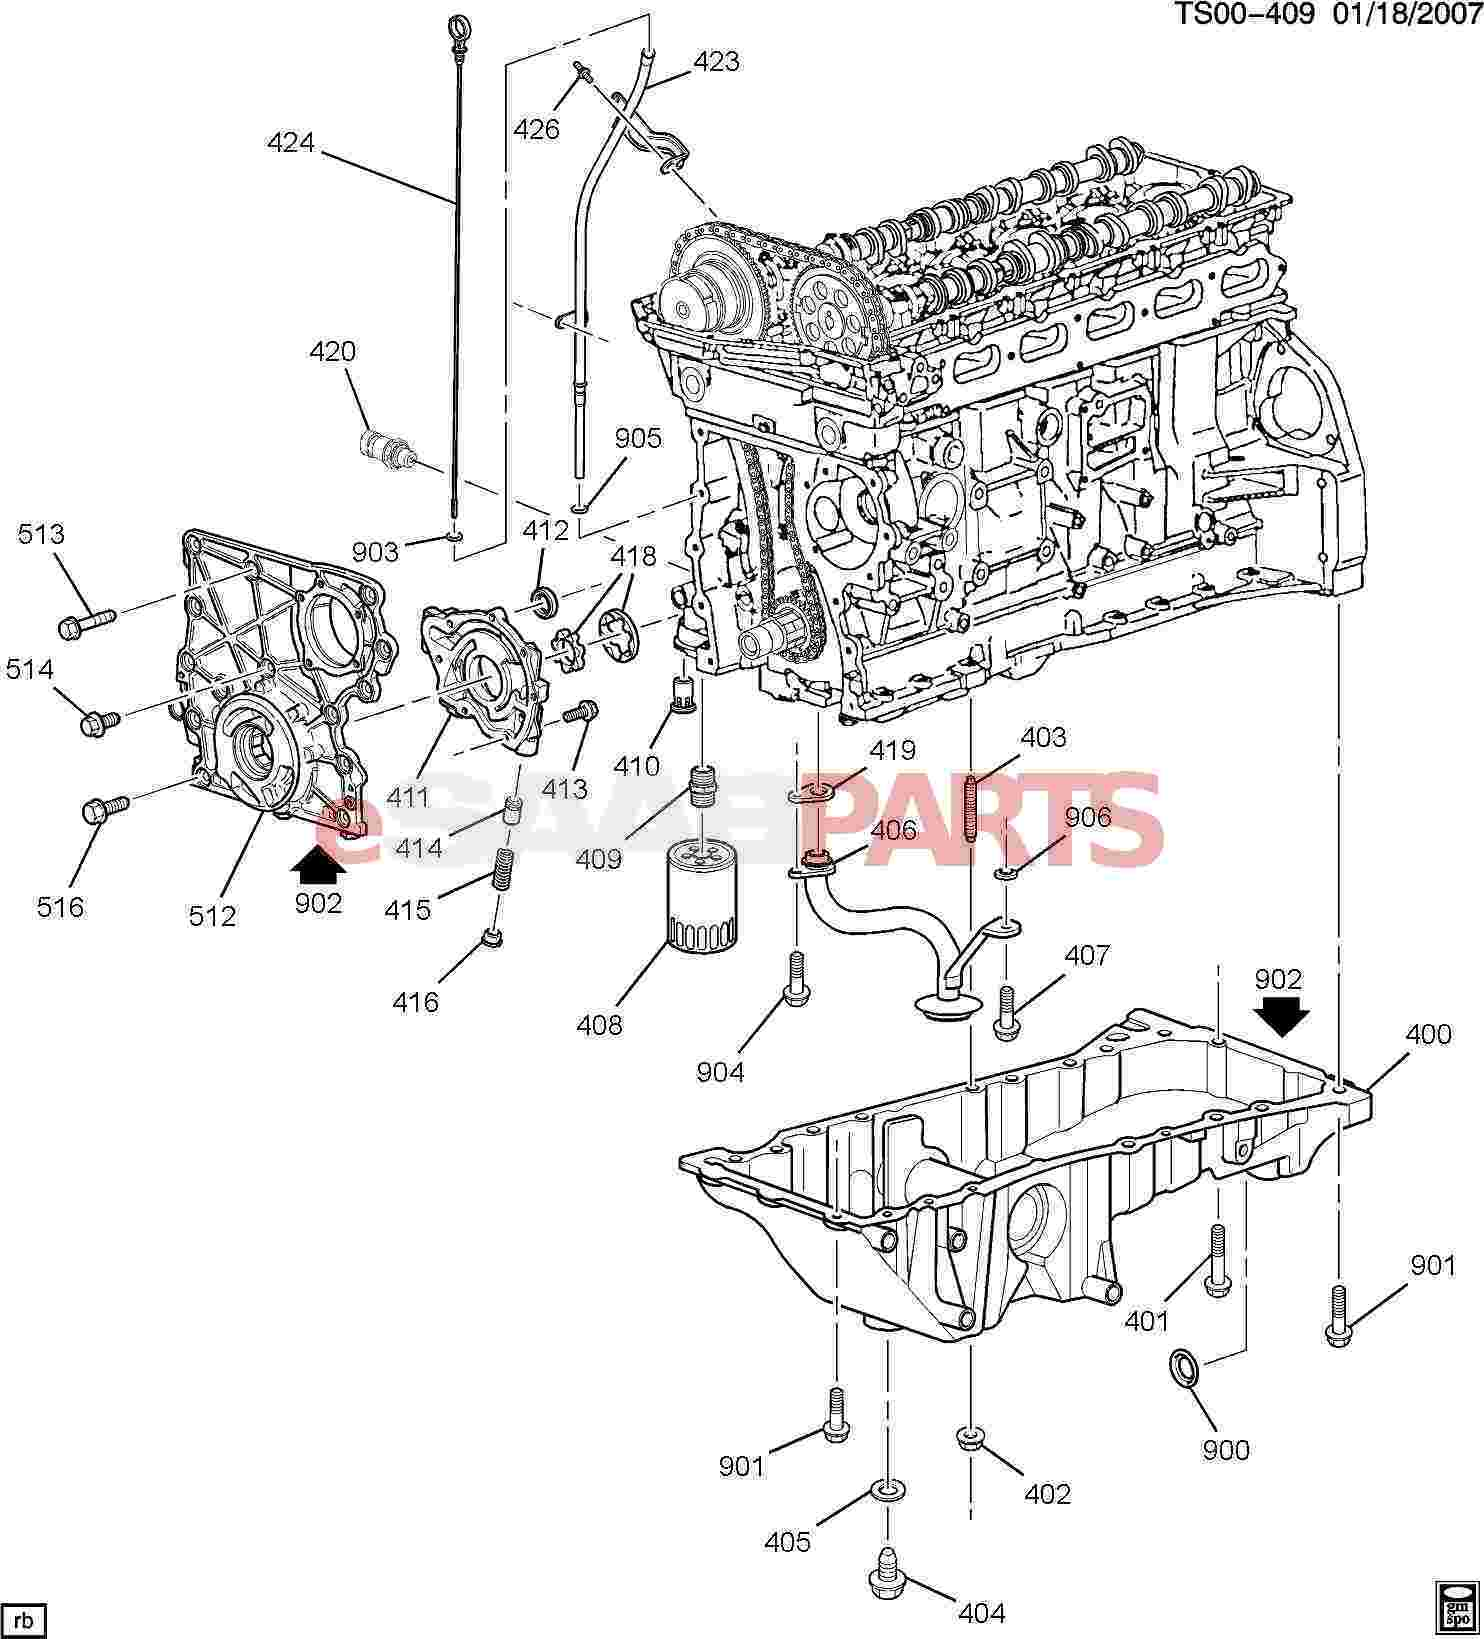 L6 Engine Diagram Automotive Wiring Roto Phase Library Rh 64 Yoobi De 1967 Chevy Truck 42l